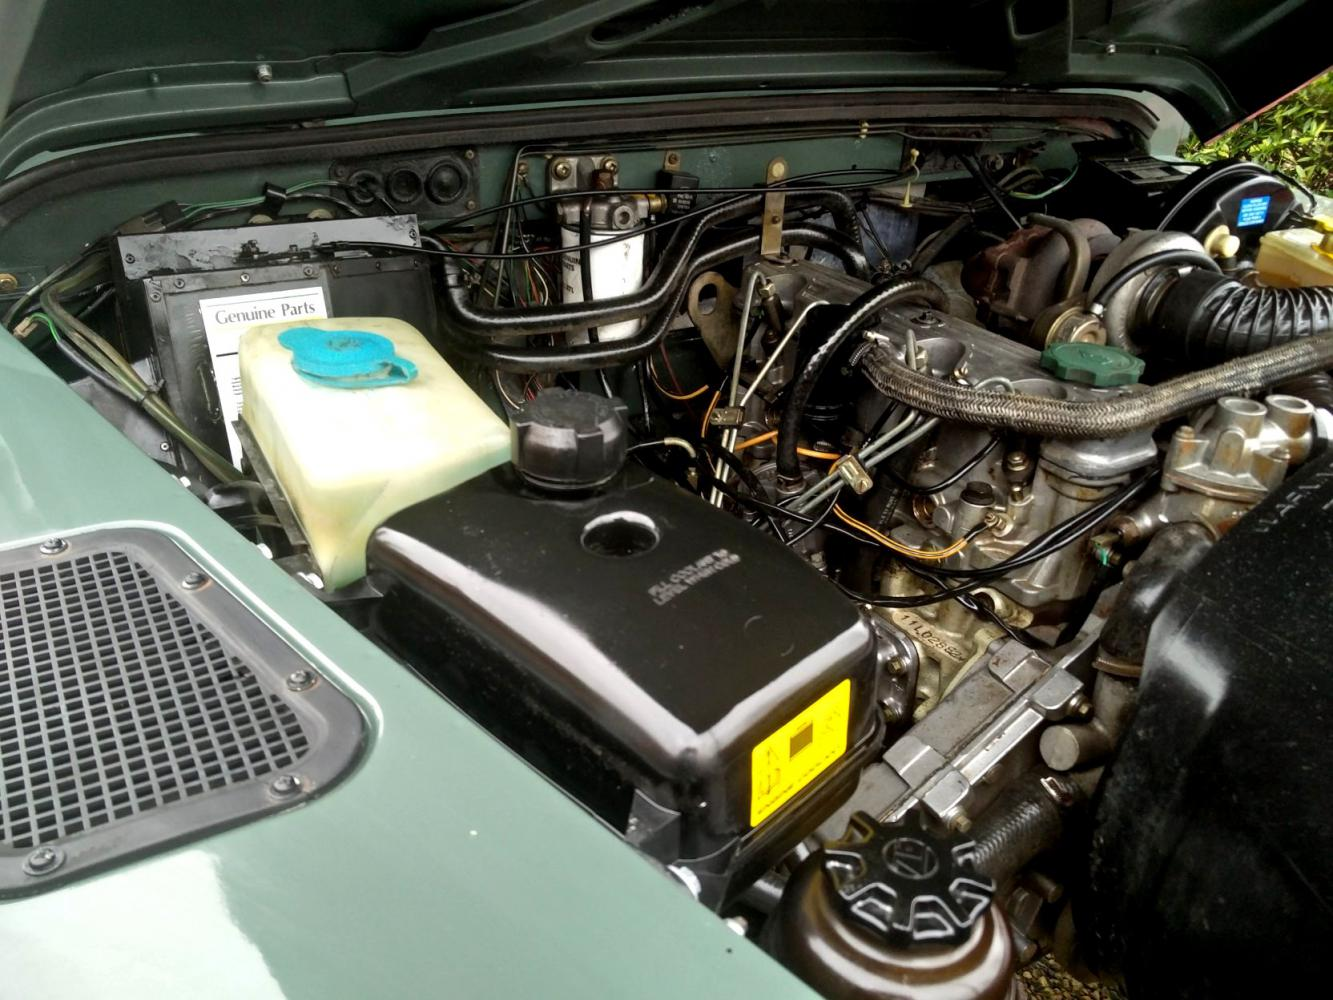 Click image for larger version  Name:1991 LR LHD Defender 90 Keswick Green Tdi 1 engine bay right.jpg Views:117 Size:183.6 KB ID:215593